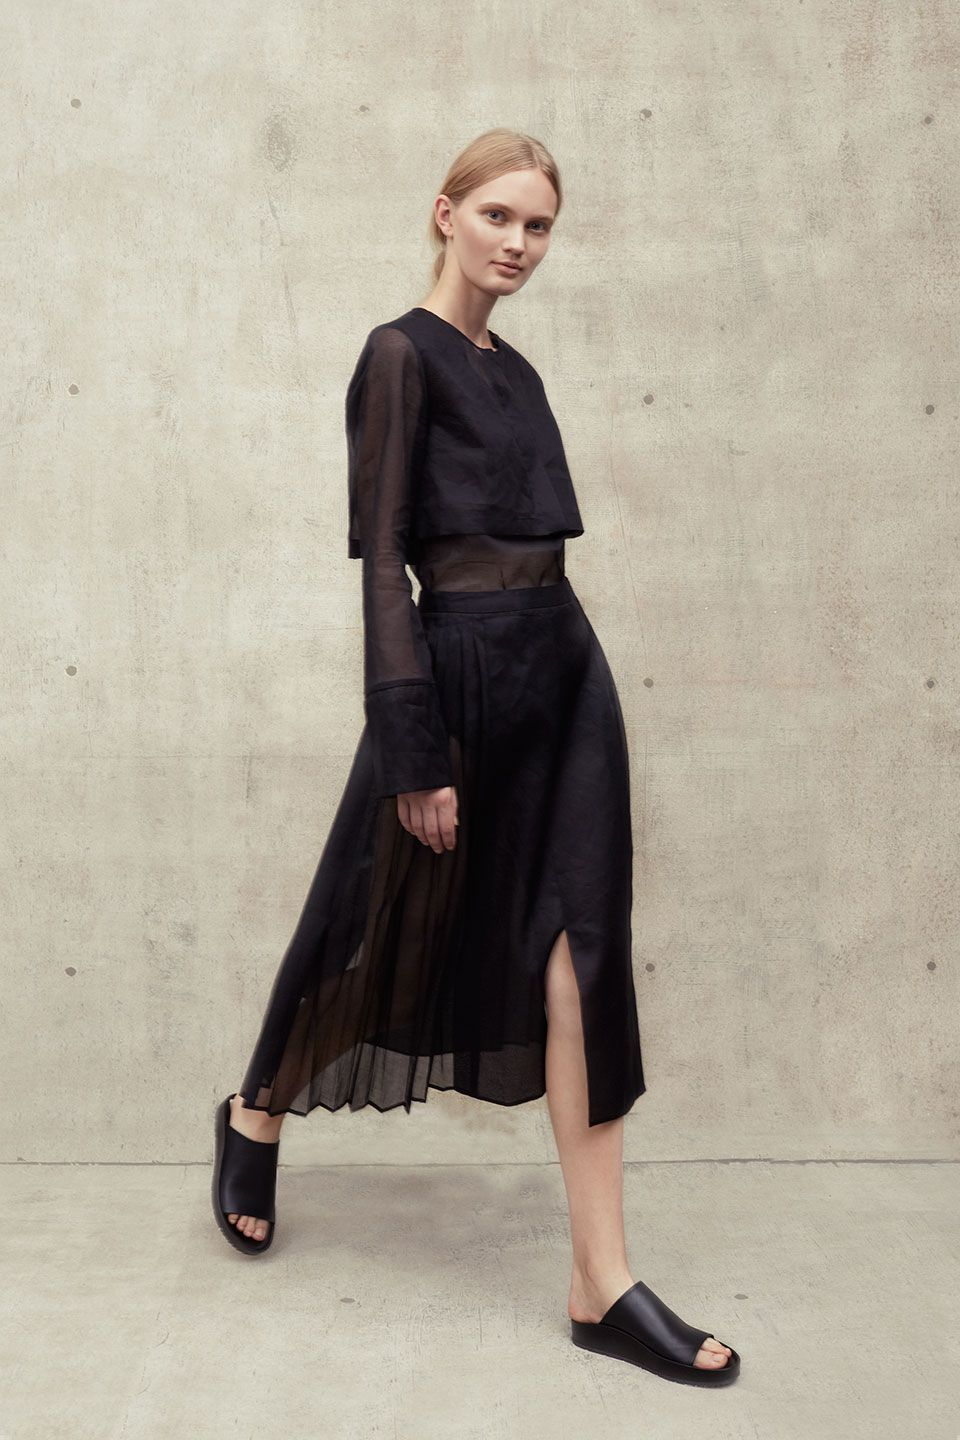 It wasBevin Butler's persistentneedfor sophisticated,yet stylish, suits that inspired her to leave her career as a lawyer to be become a full fledged designer. Her debut collection for Cade is all about tailored separates that are not only work appropriate but also relaxed and modern. 9 to 5